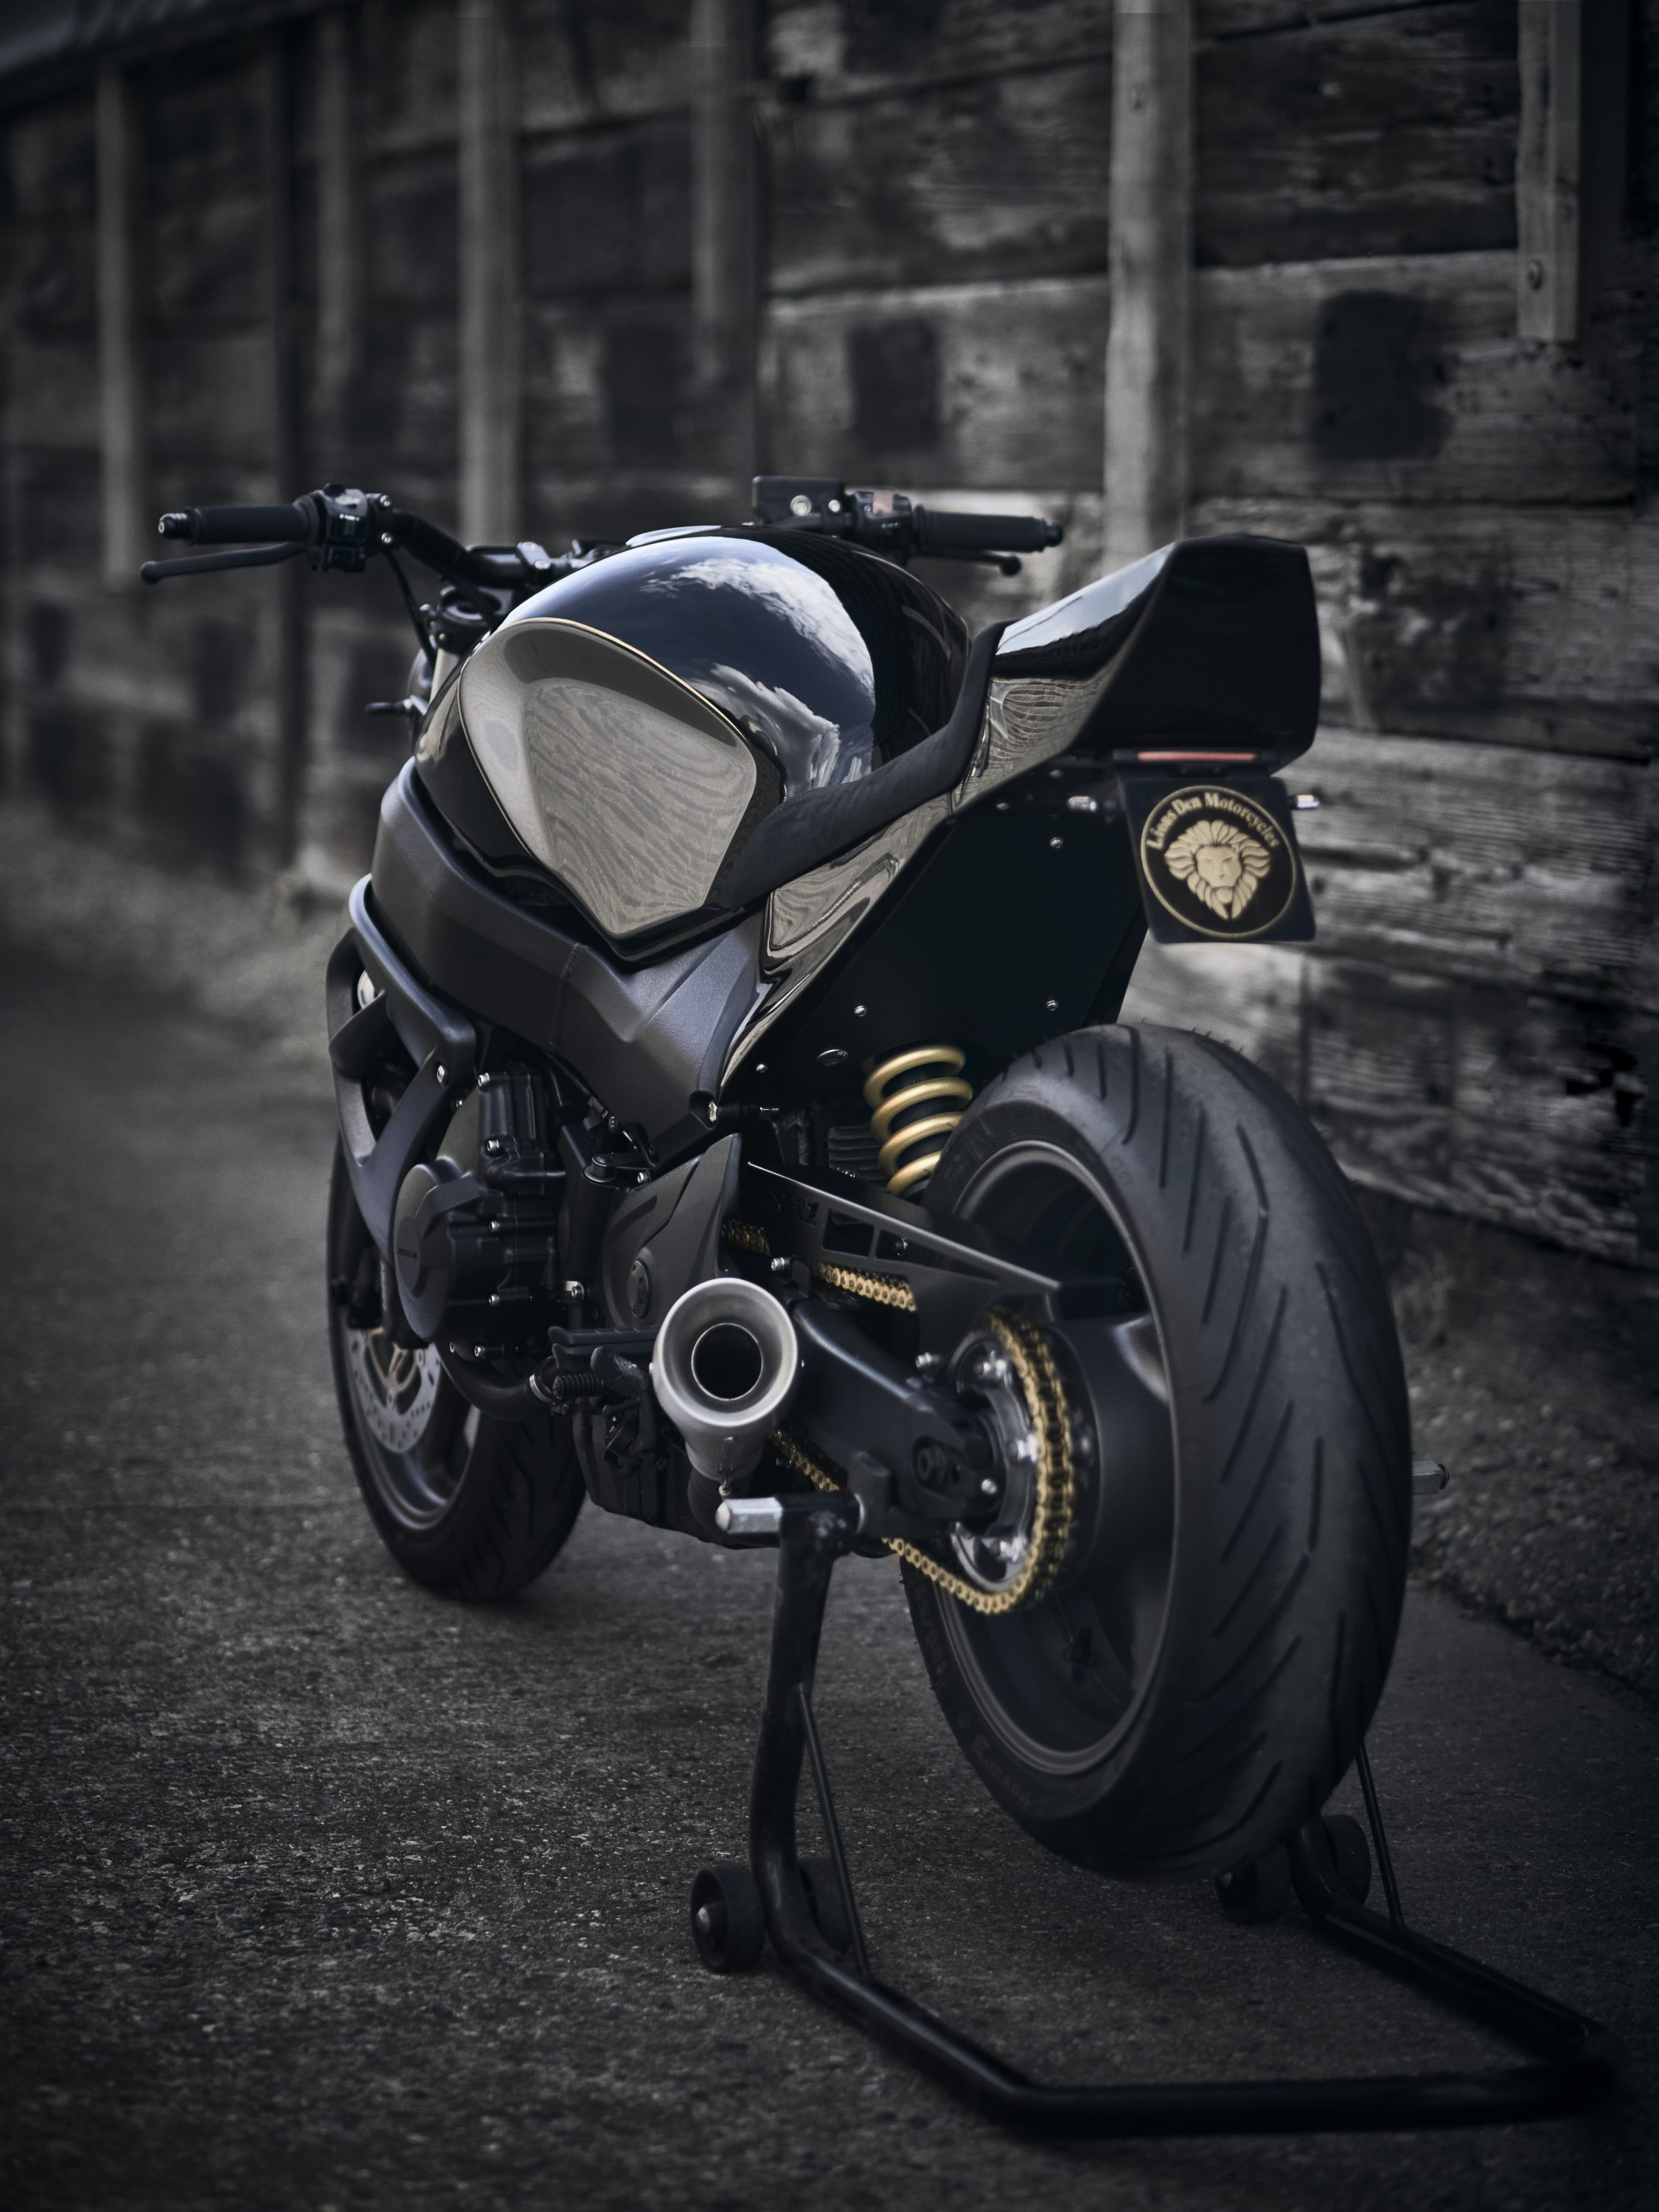 Hero Motorcycle Image